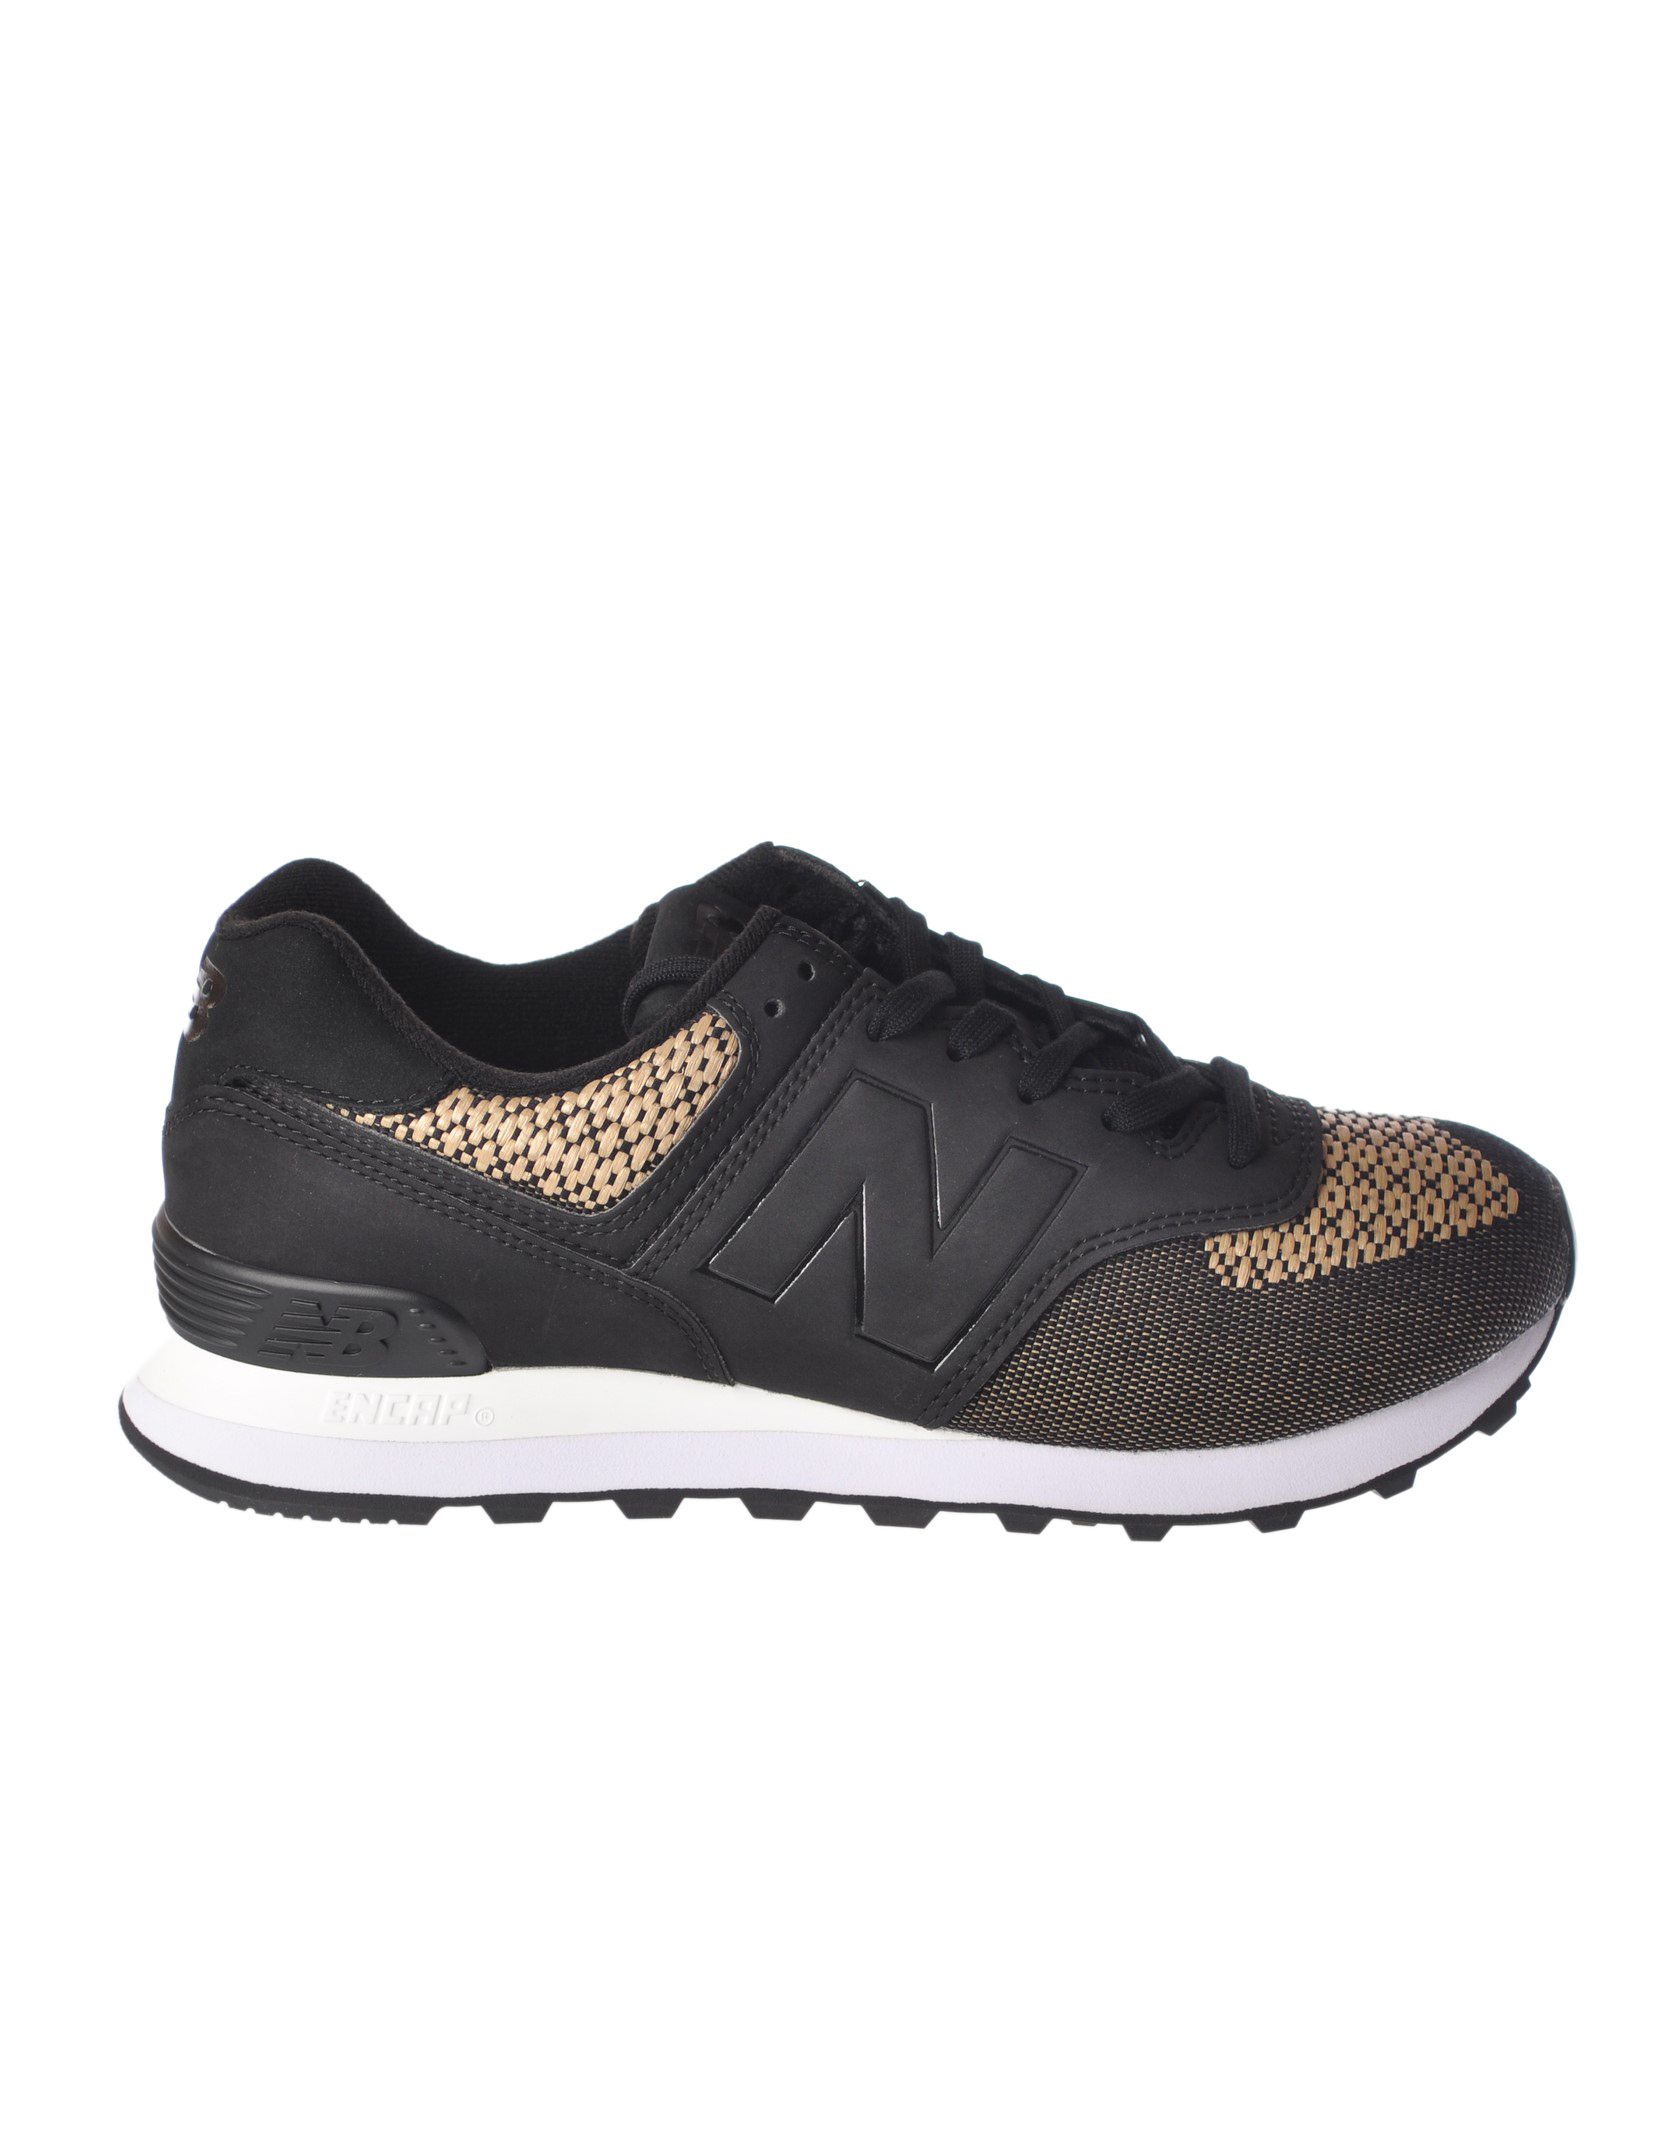 Balance Balance 574 New Sneakers 574 New New 574 Sneakers BasseBemymood Sneakers BasseBemymood Balance odBrCWxe